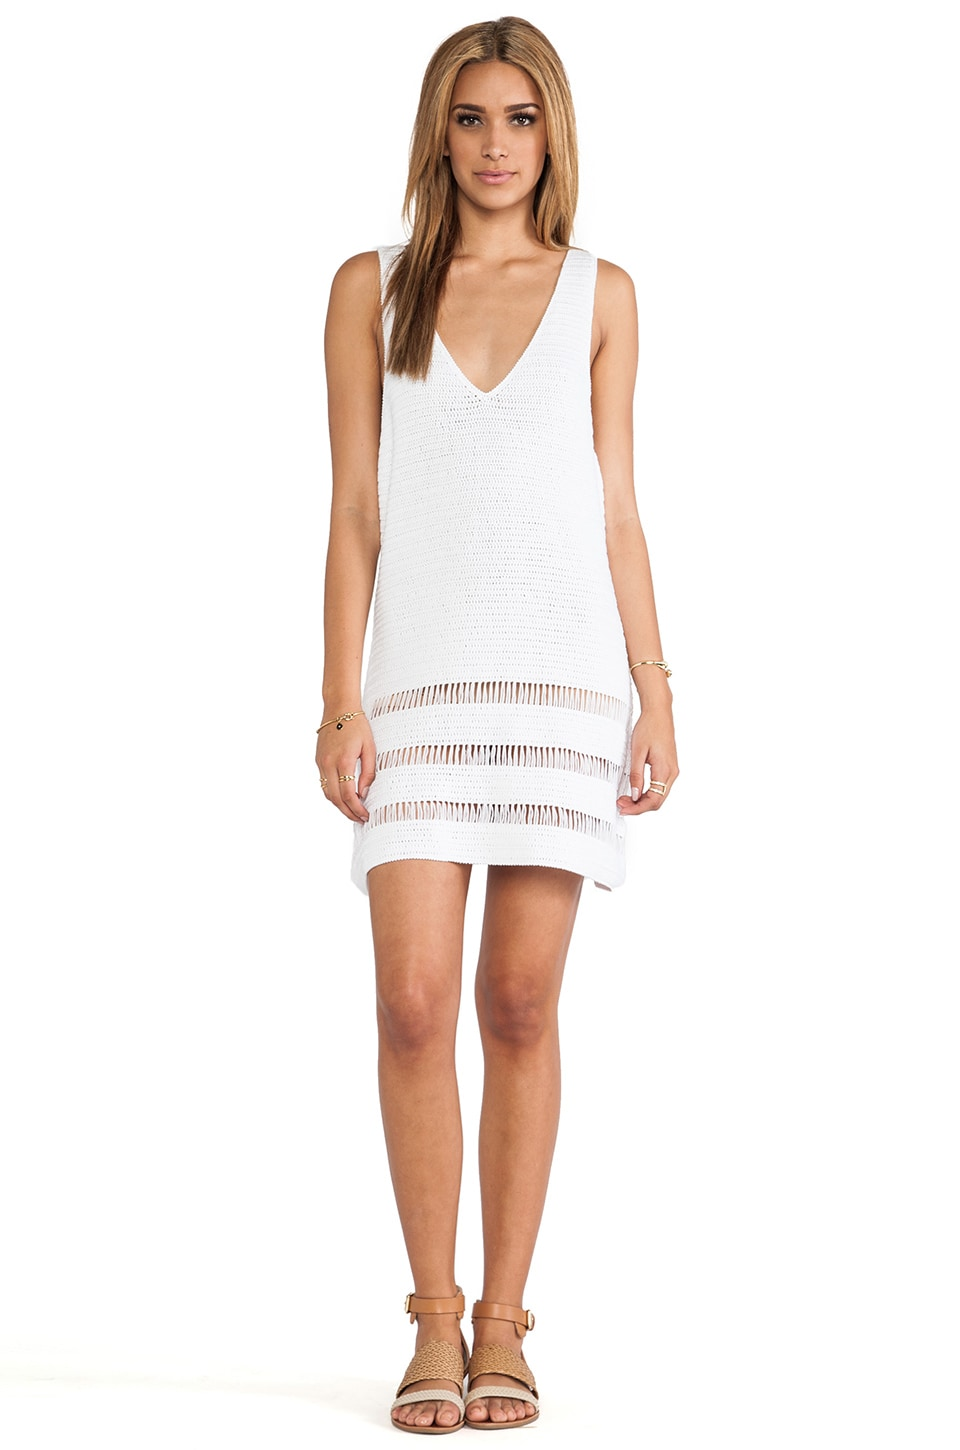 Lisa Maree A Sweet Nip Dress in Creme Fraiche